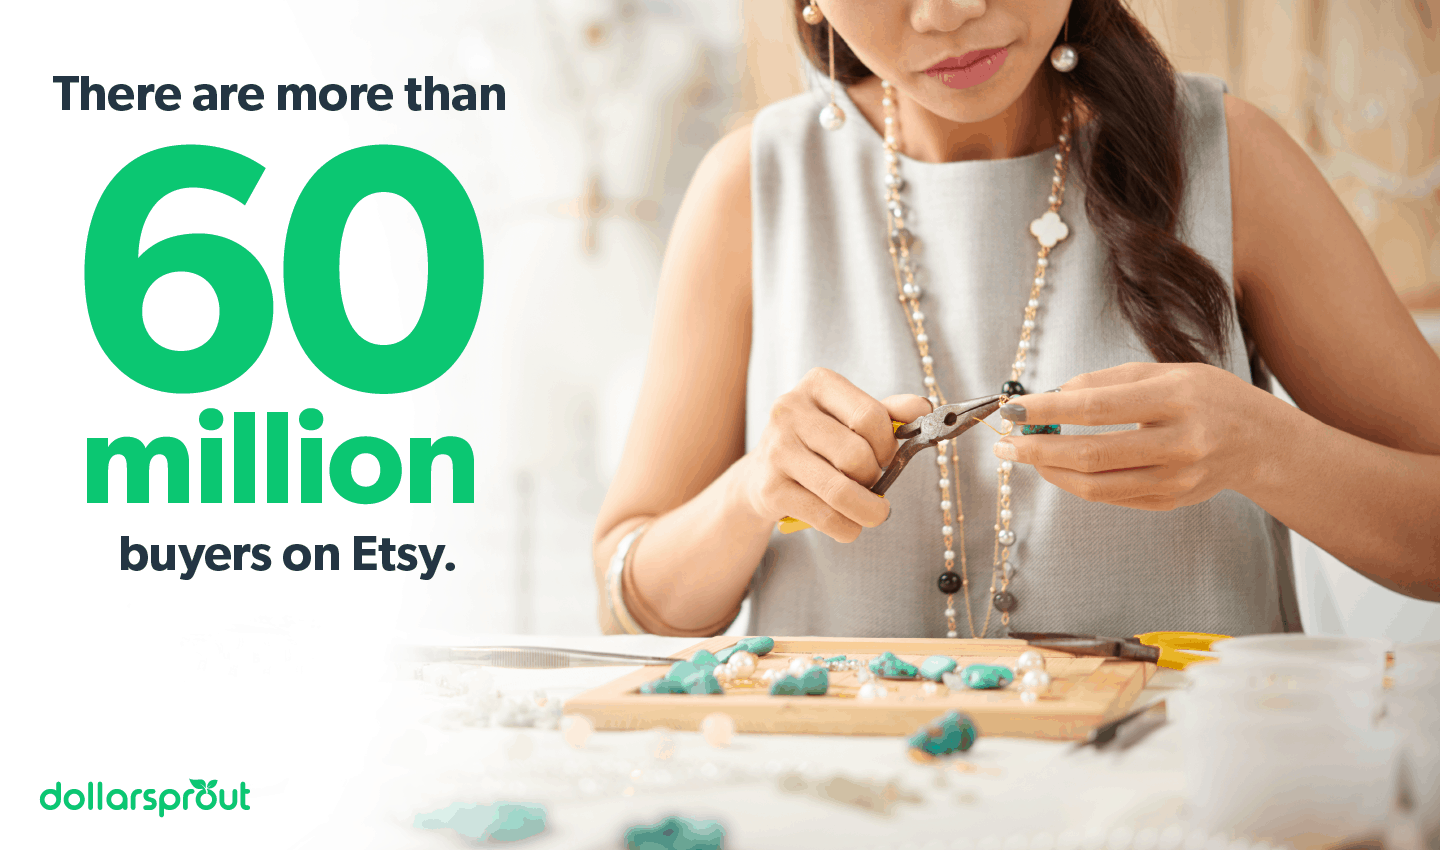 Number of buyers on Etsy